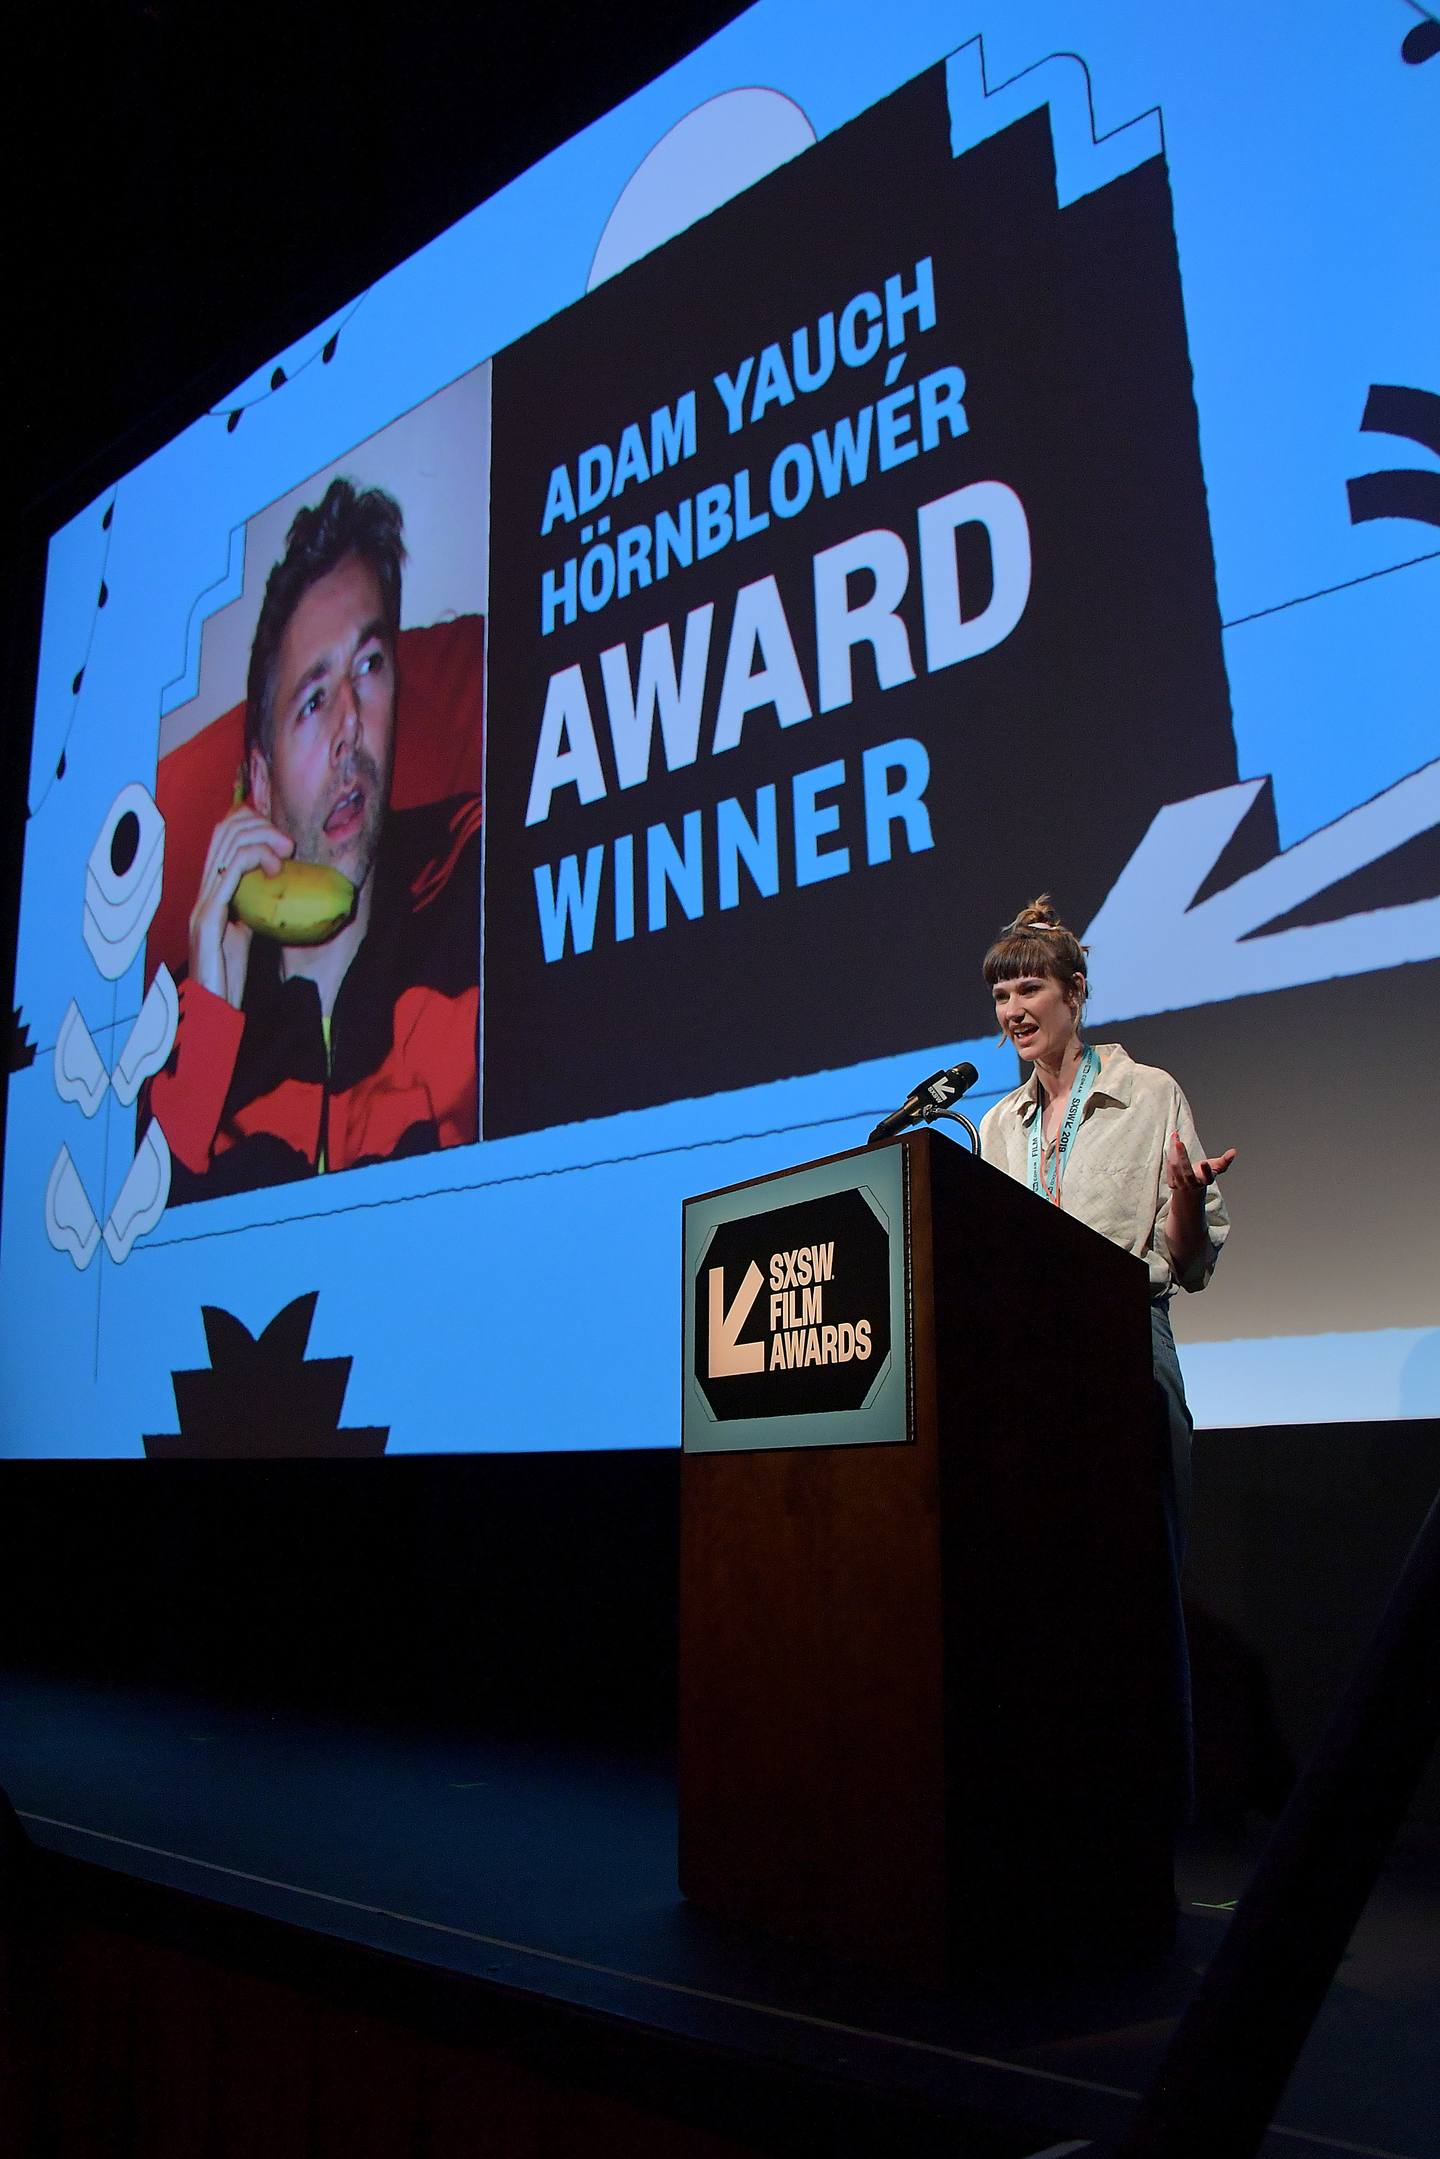 Grace Glowicki accepts the Adam Yauch Hornblower Award for her film Tito at the SXSW Film Awards at the Paramount Theatre.